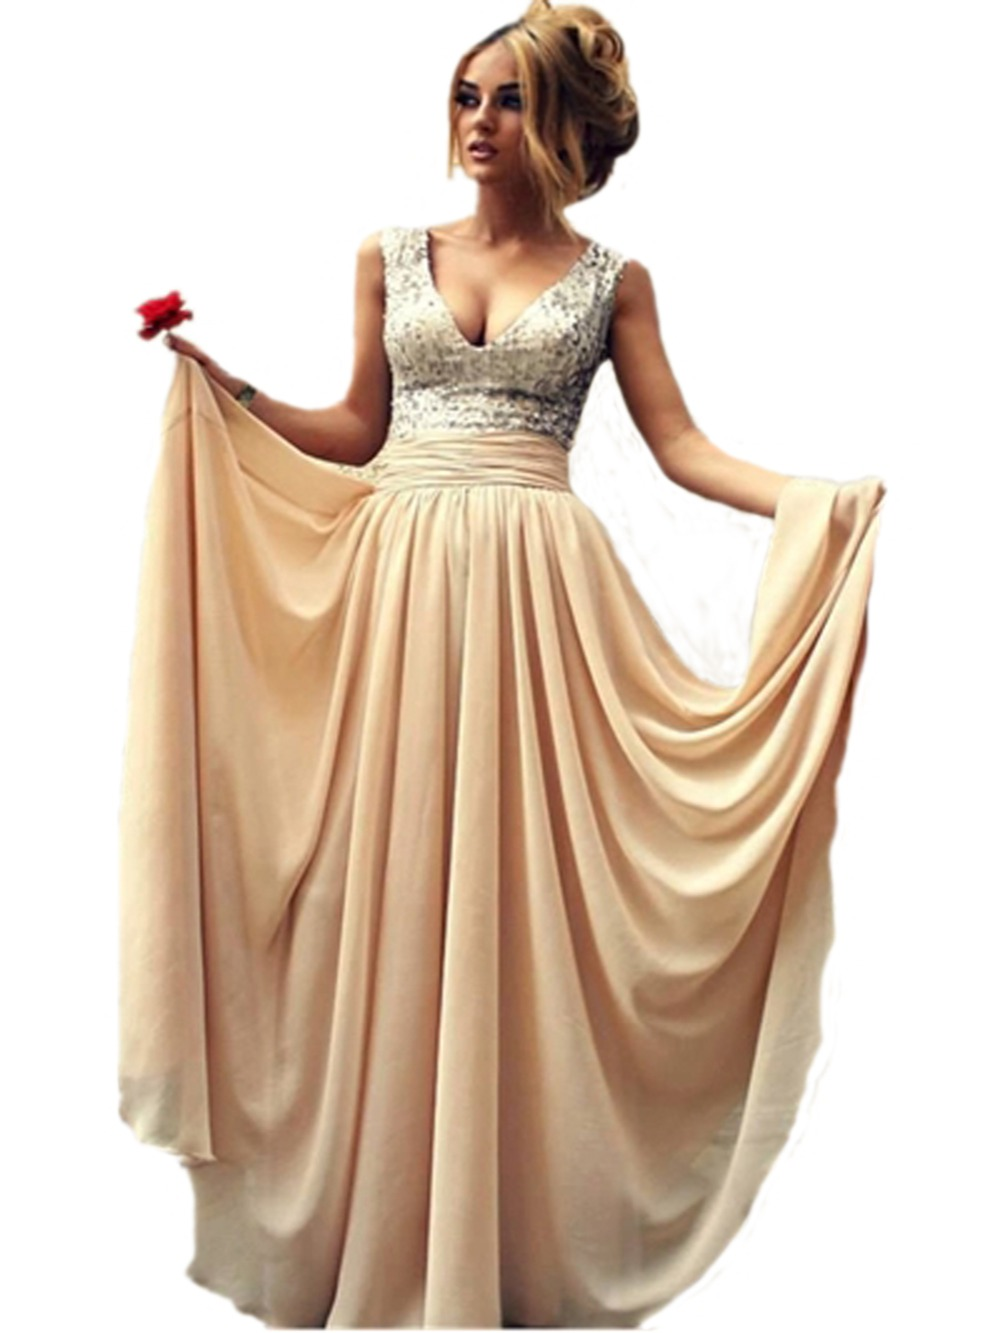 Wedding Champagne Colored Dresses online get cheap champagne colored dress aliexpress com alibaba long party evening elegant 2016 robe de soiree grande taille color dresses